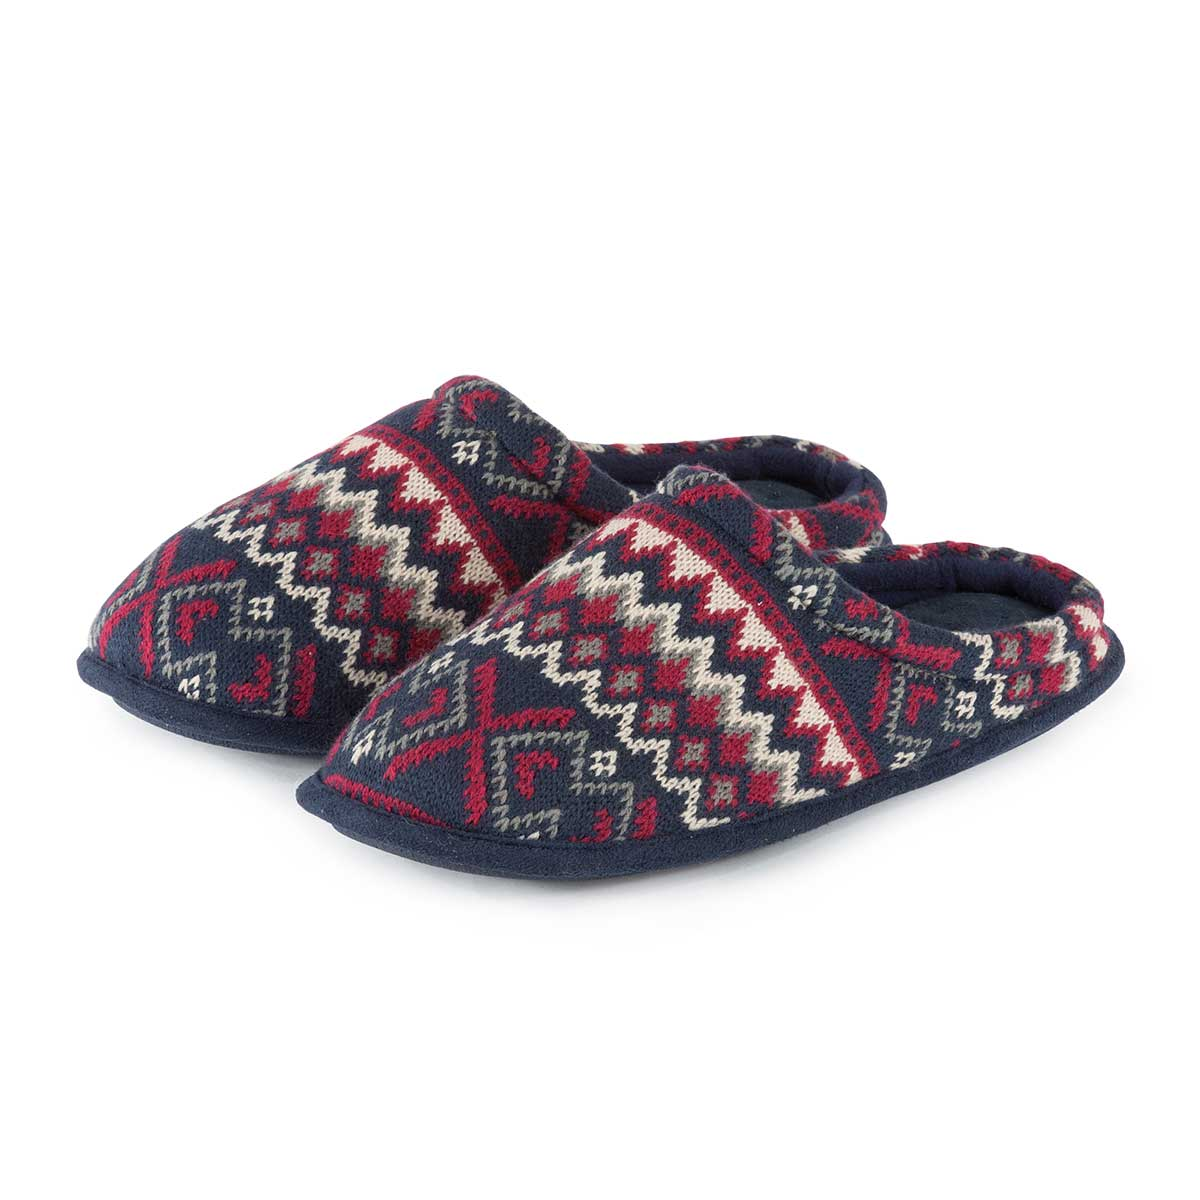 c5dc5e48654e Isotoner Mens Fair Isle Knit Mule Slippers Navy Red